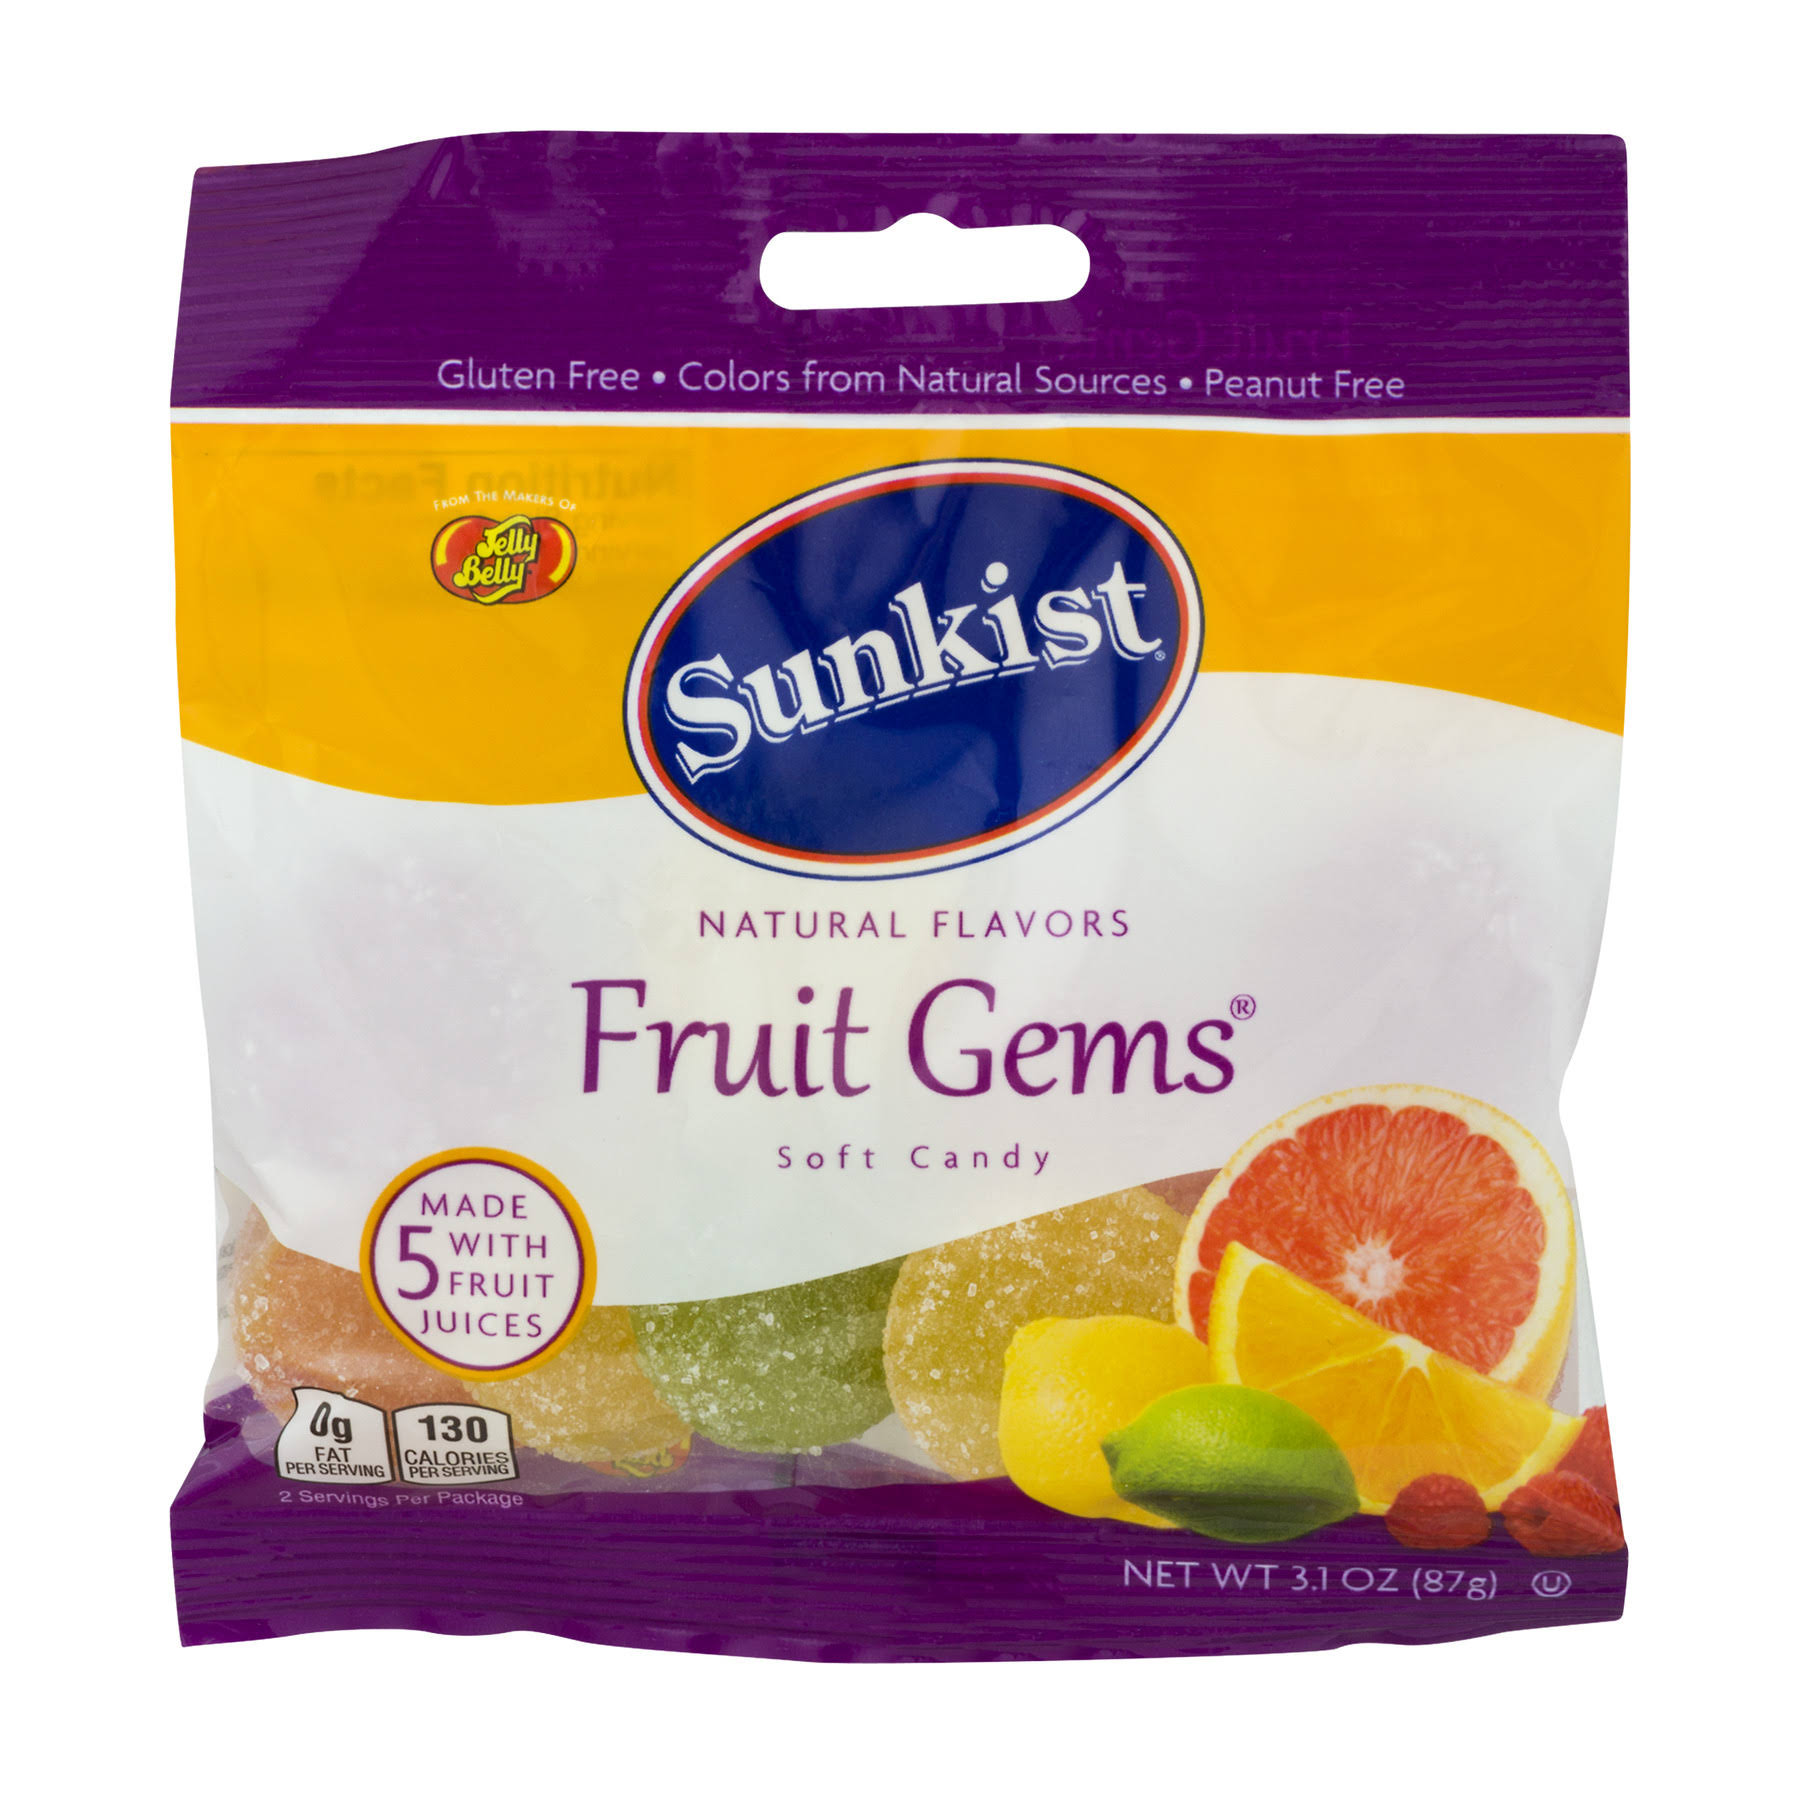 Jelly Belly Sunkist Fruit Gems Soft Candy - 3.1oz